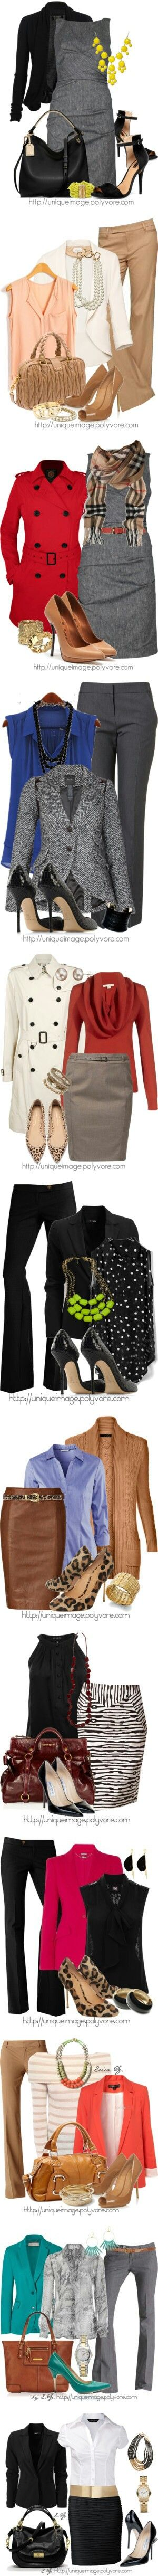 The best dress guide to a classy day at work..